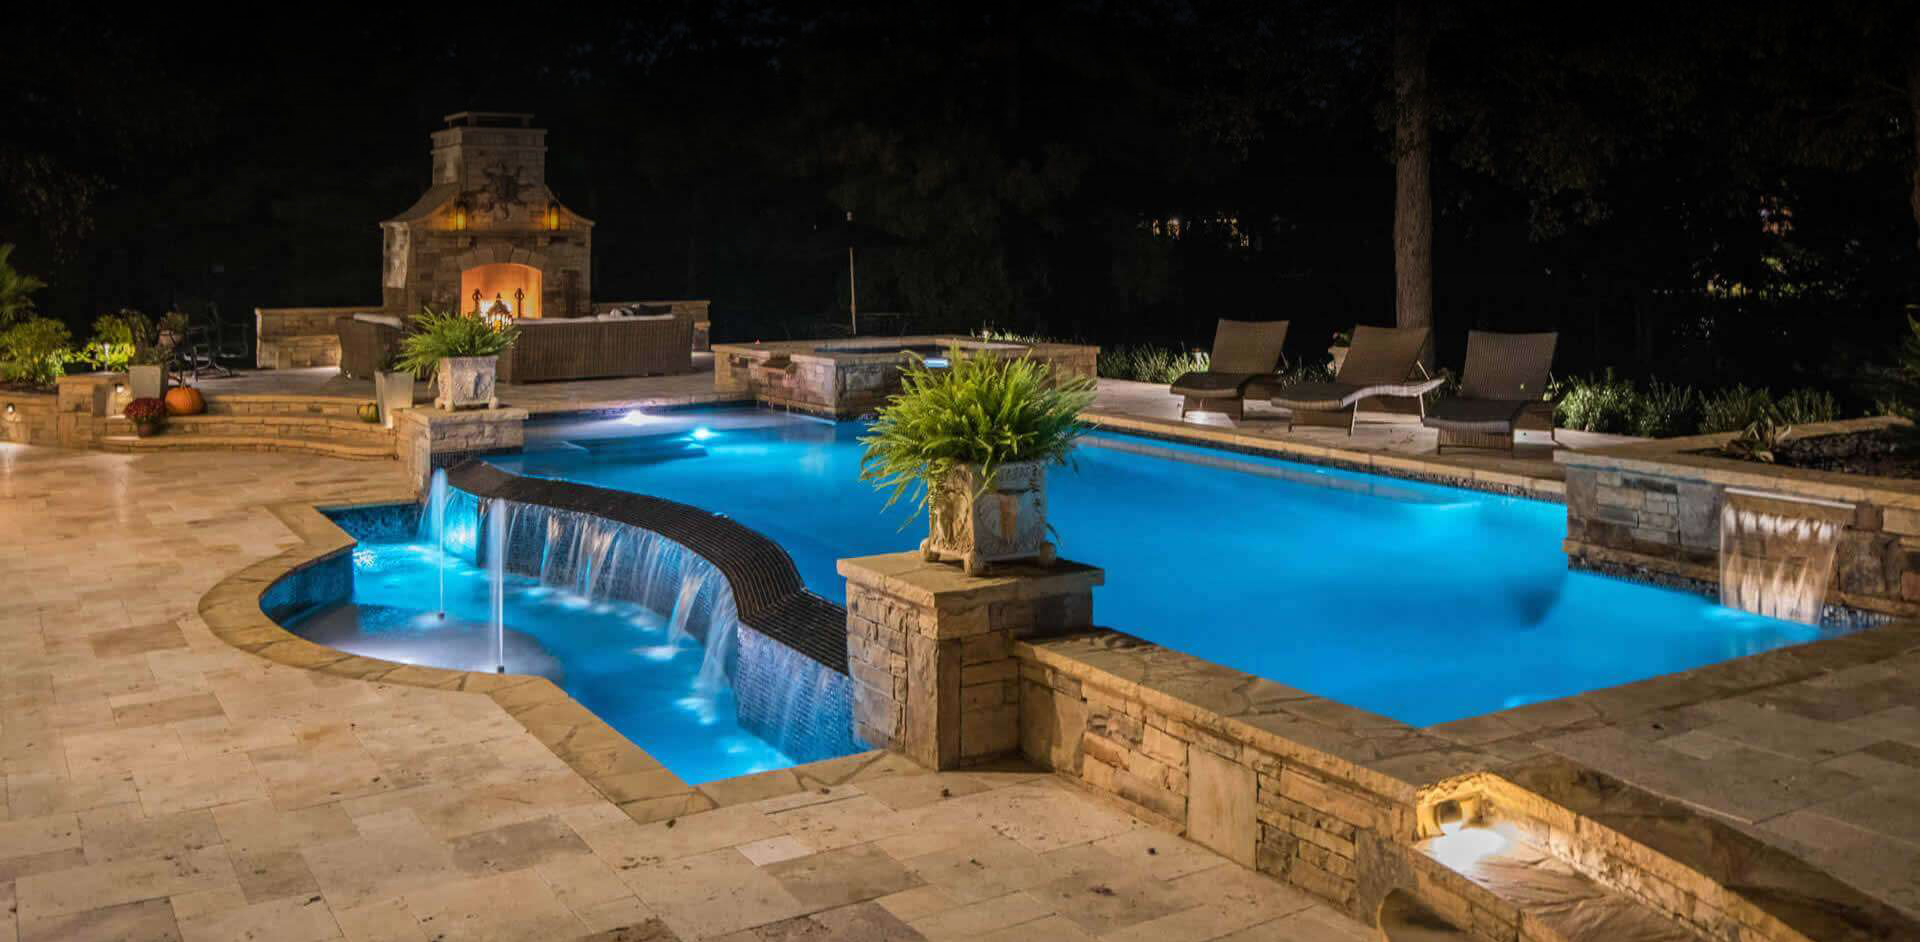 Palazzo Pool Spa Pool Construction Service Renovation Design